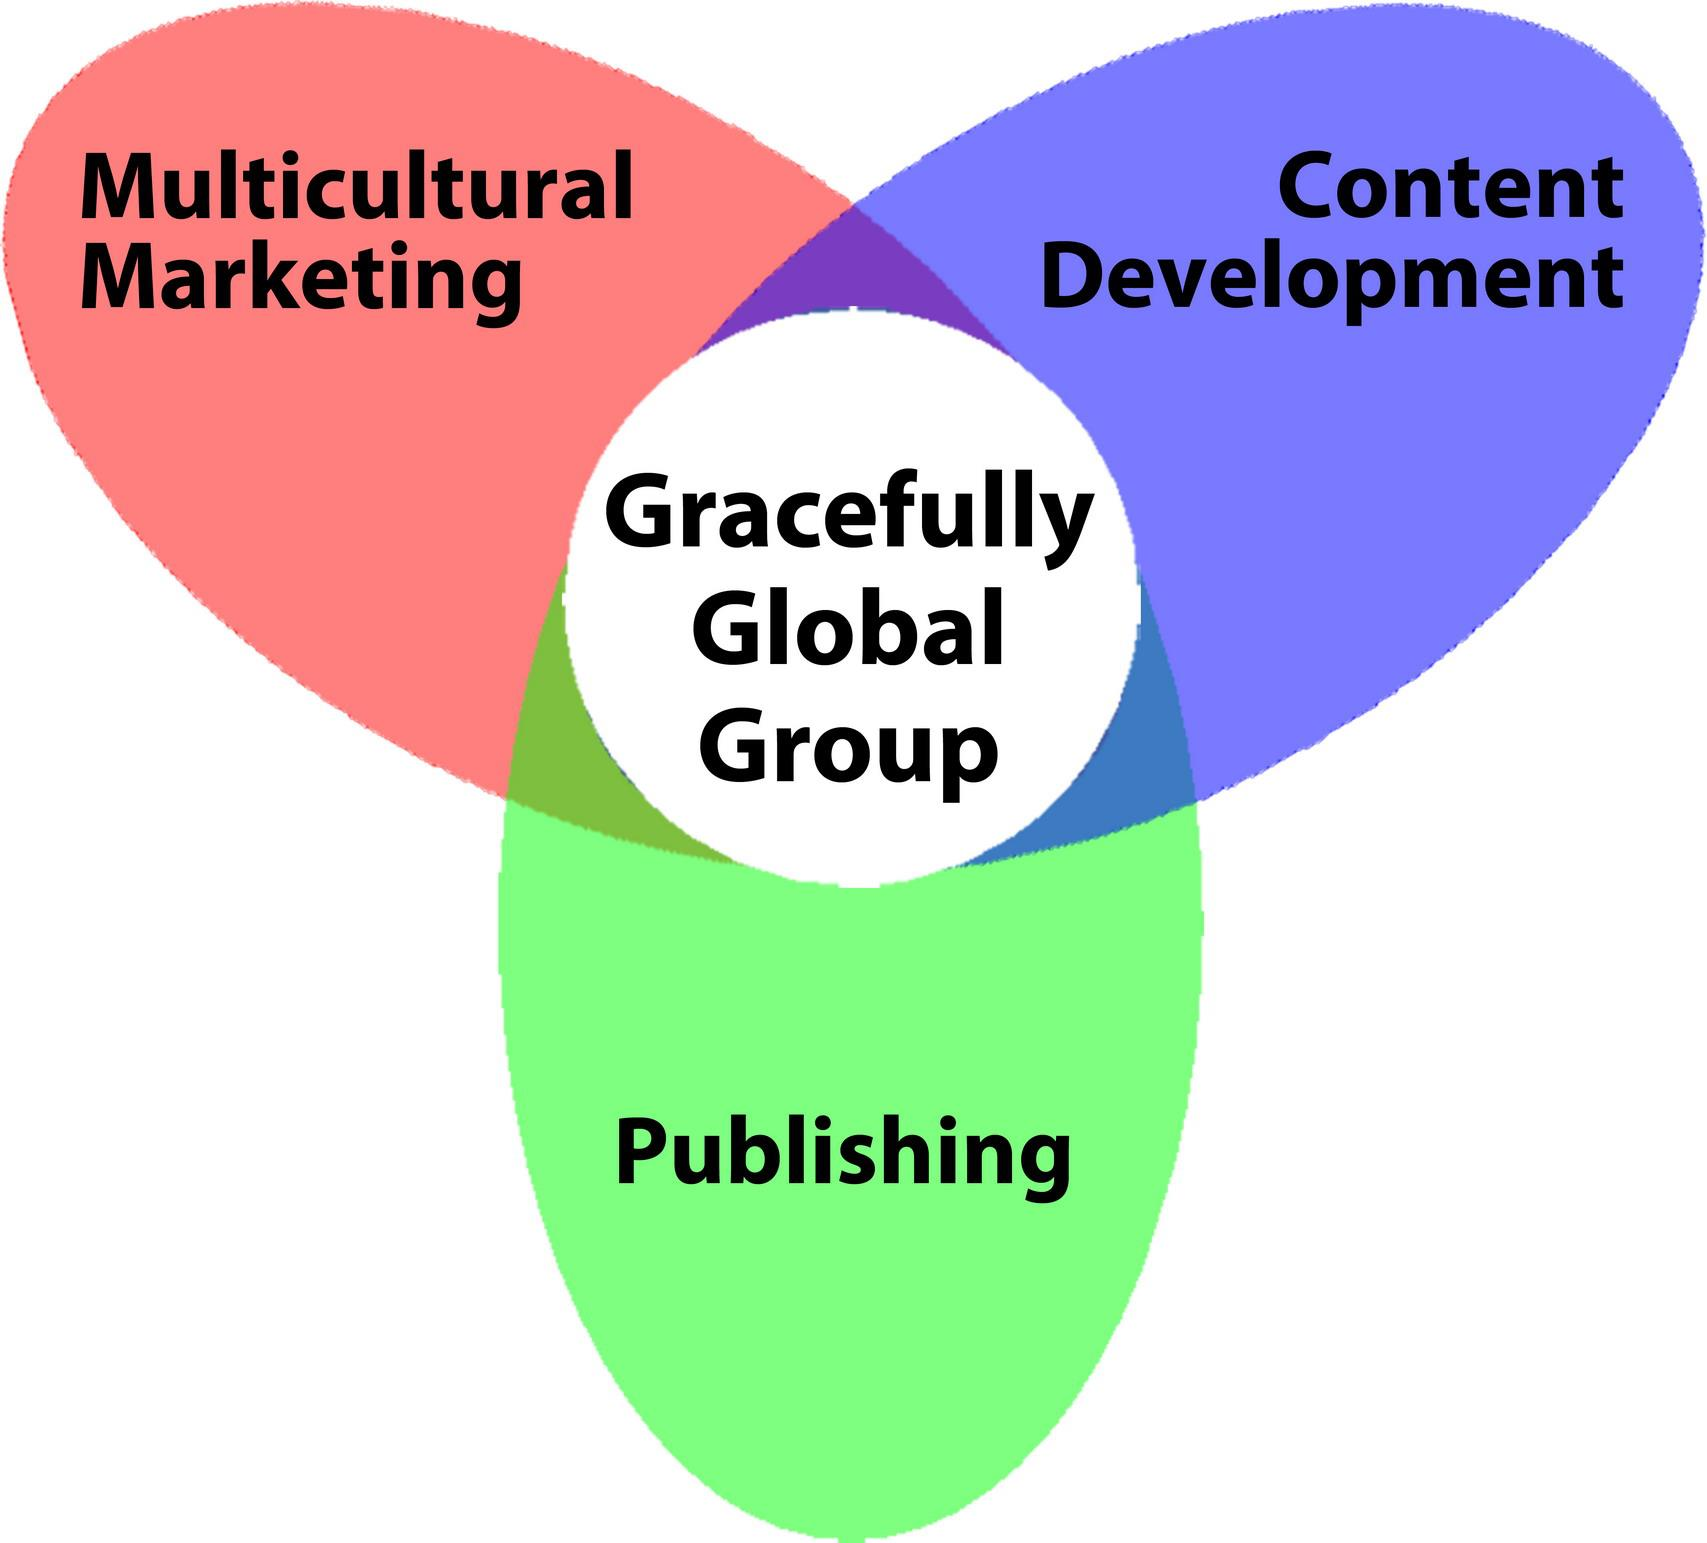 Gracefully Global Group – Premiere publisher of literature